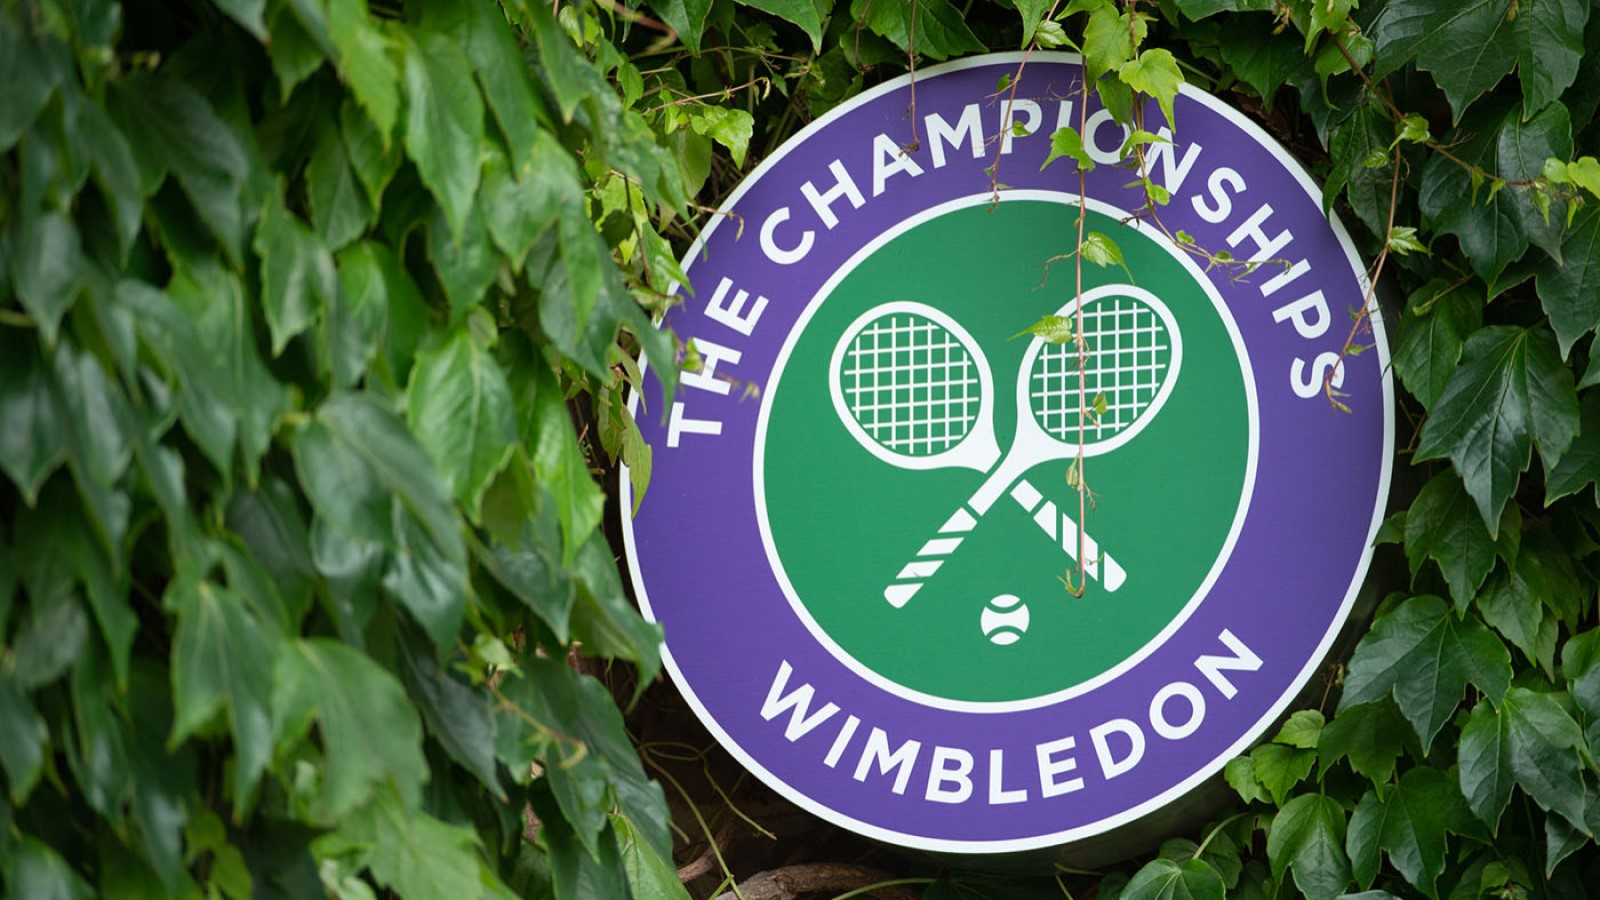 wimbledon england-wimbledon logo in blue green colour